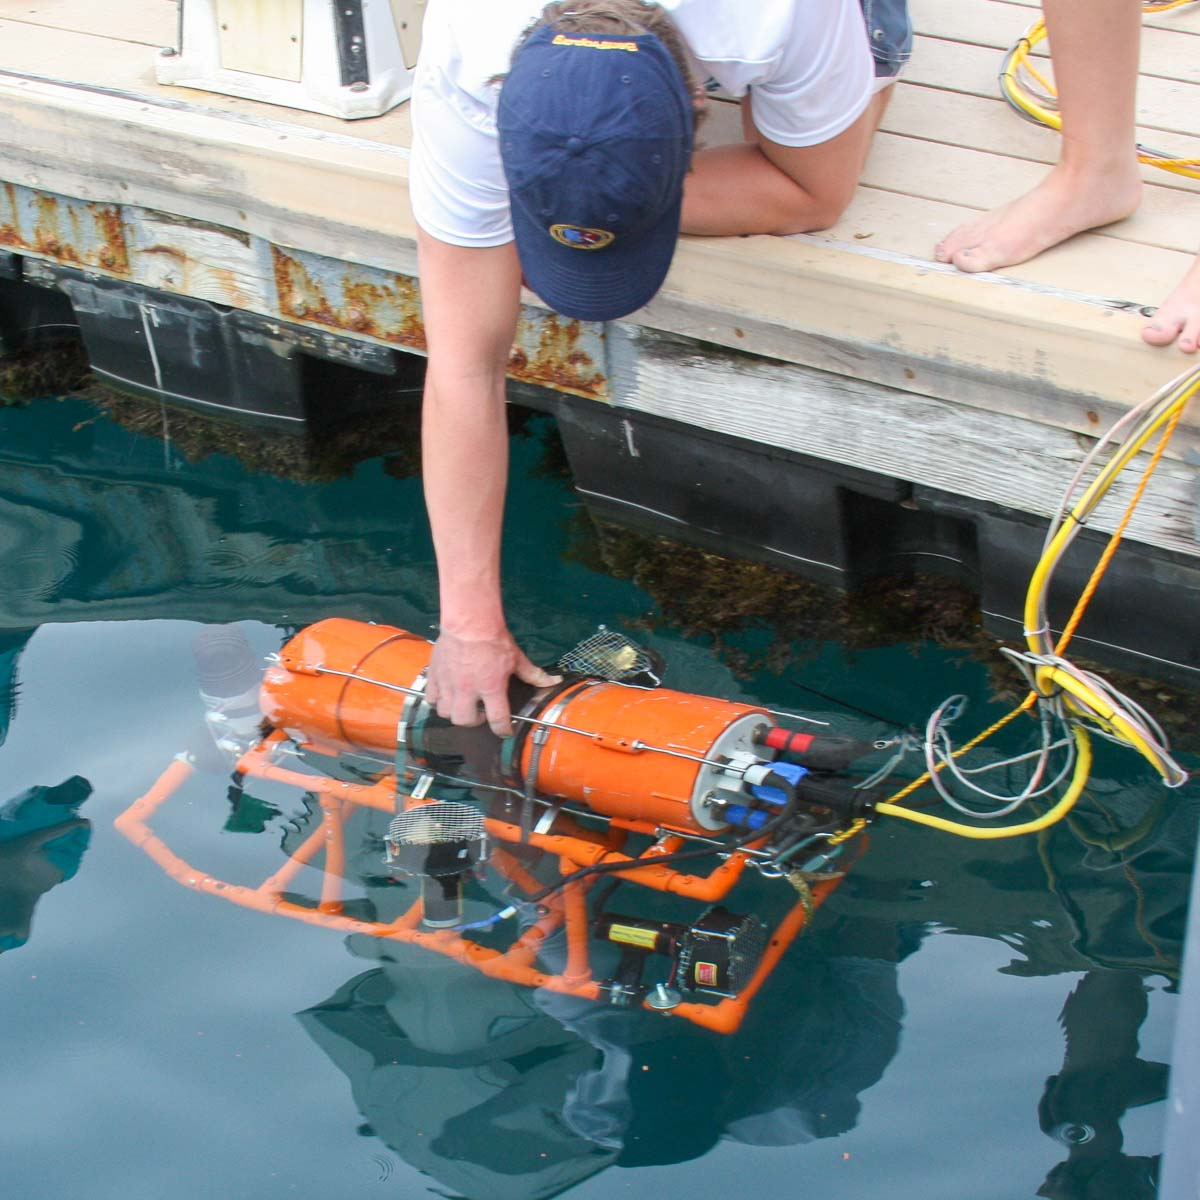 lowering an underwater vehicle into the water